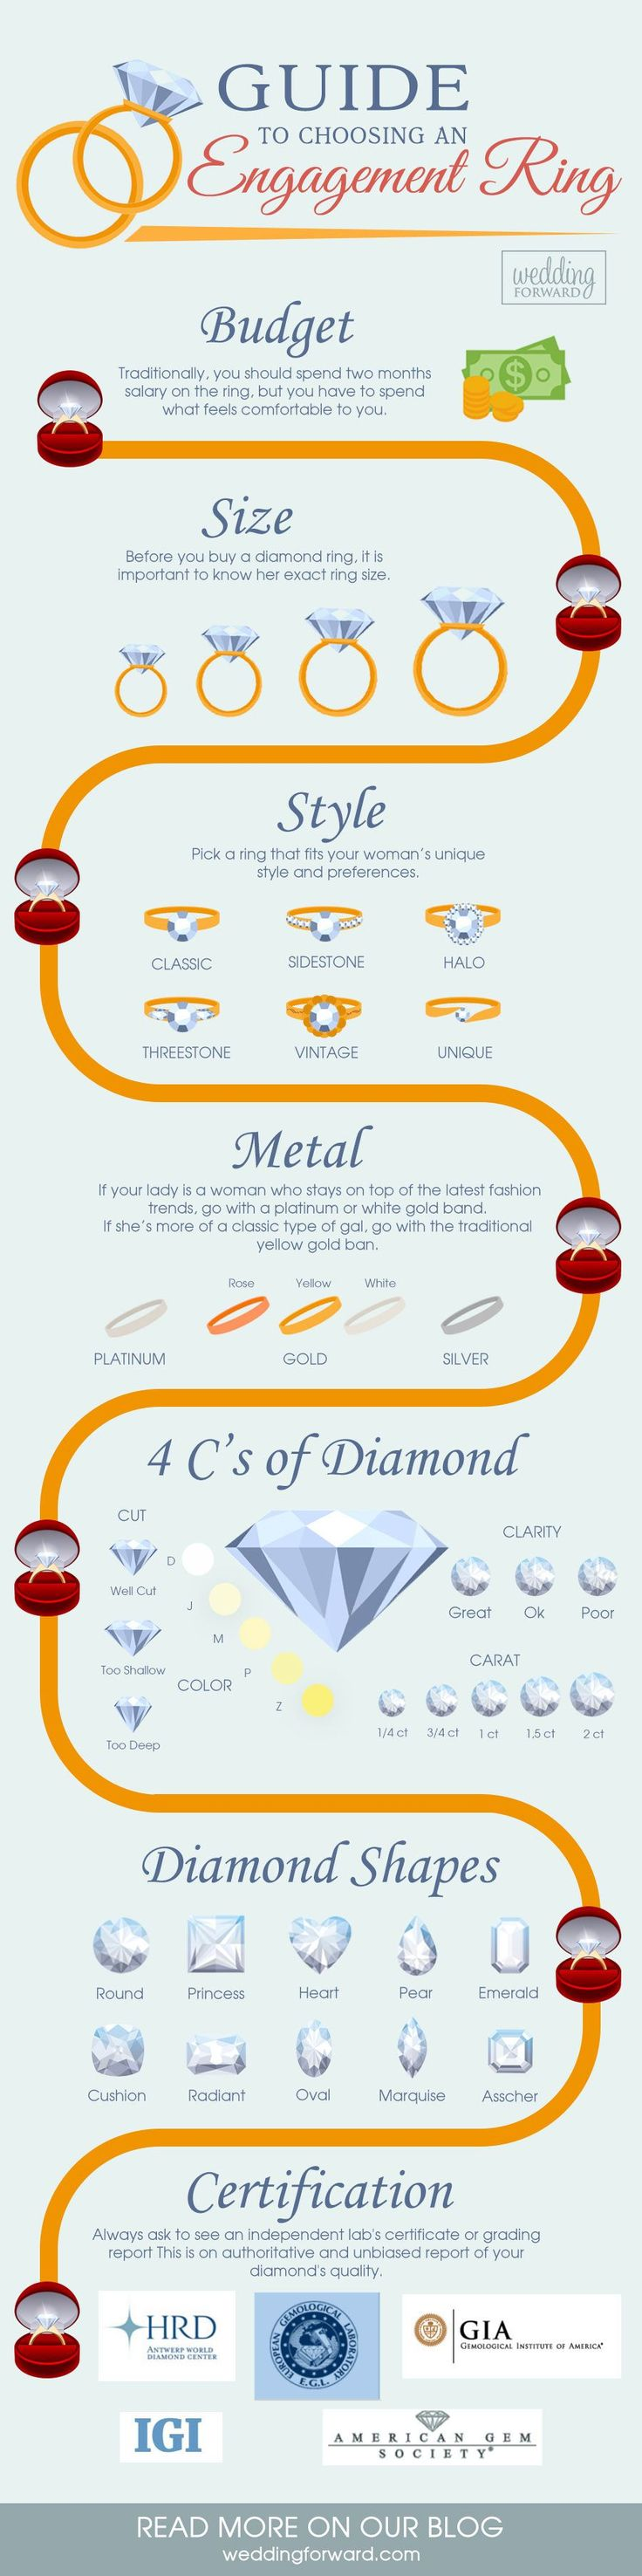 Complete Visual Guide to Engagement Rings ❤️ Here is a compiled list of the important points to look out for a while picking an engagement ring. We'll help you to choose perfect diamond ring, find her ring size and planning a marriage proposal. See more: http://www.weddingforward.com/guide-to-engagement-rings/ #engagement #rings #guide YOUR WEDDING INSPIRATION GUIDE IS WAITING FOR YOU...